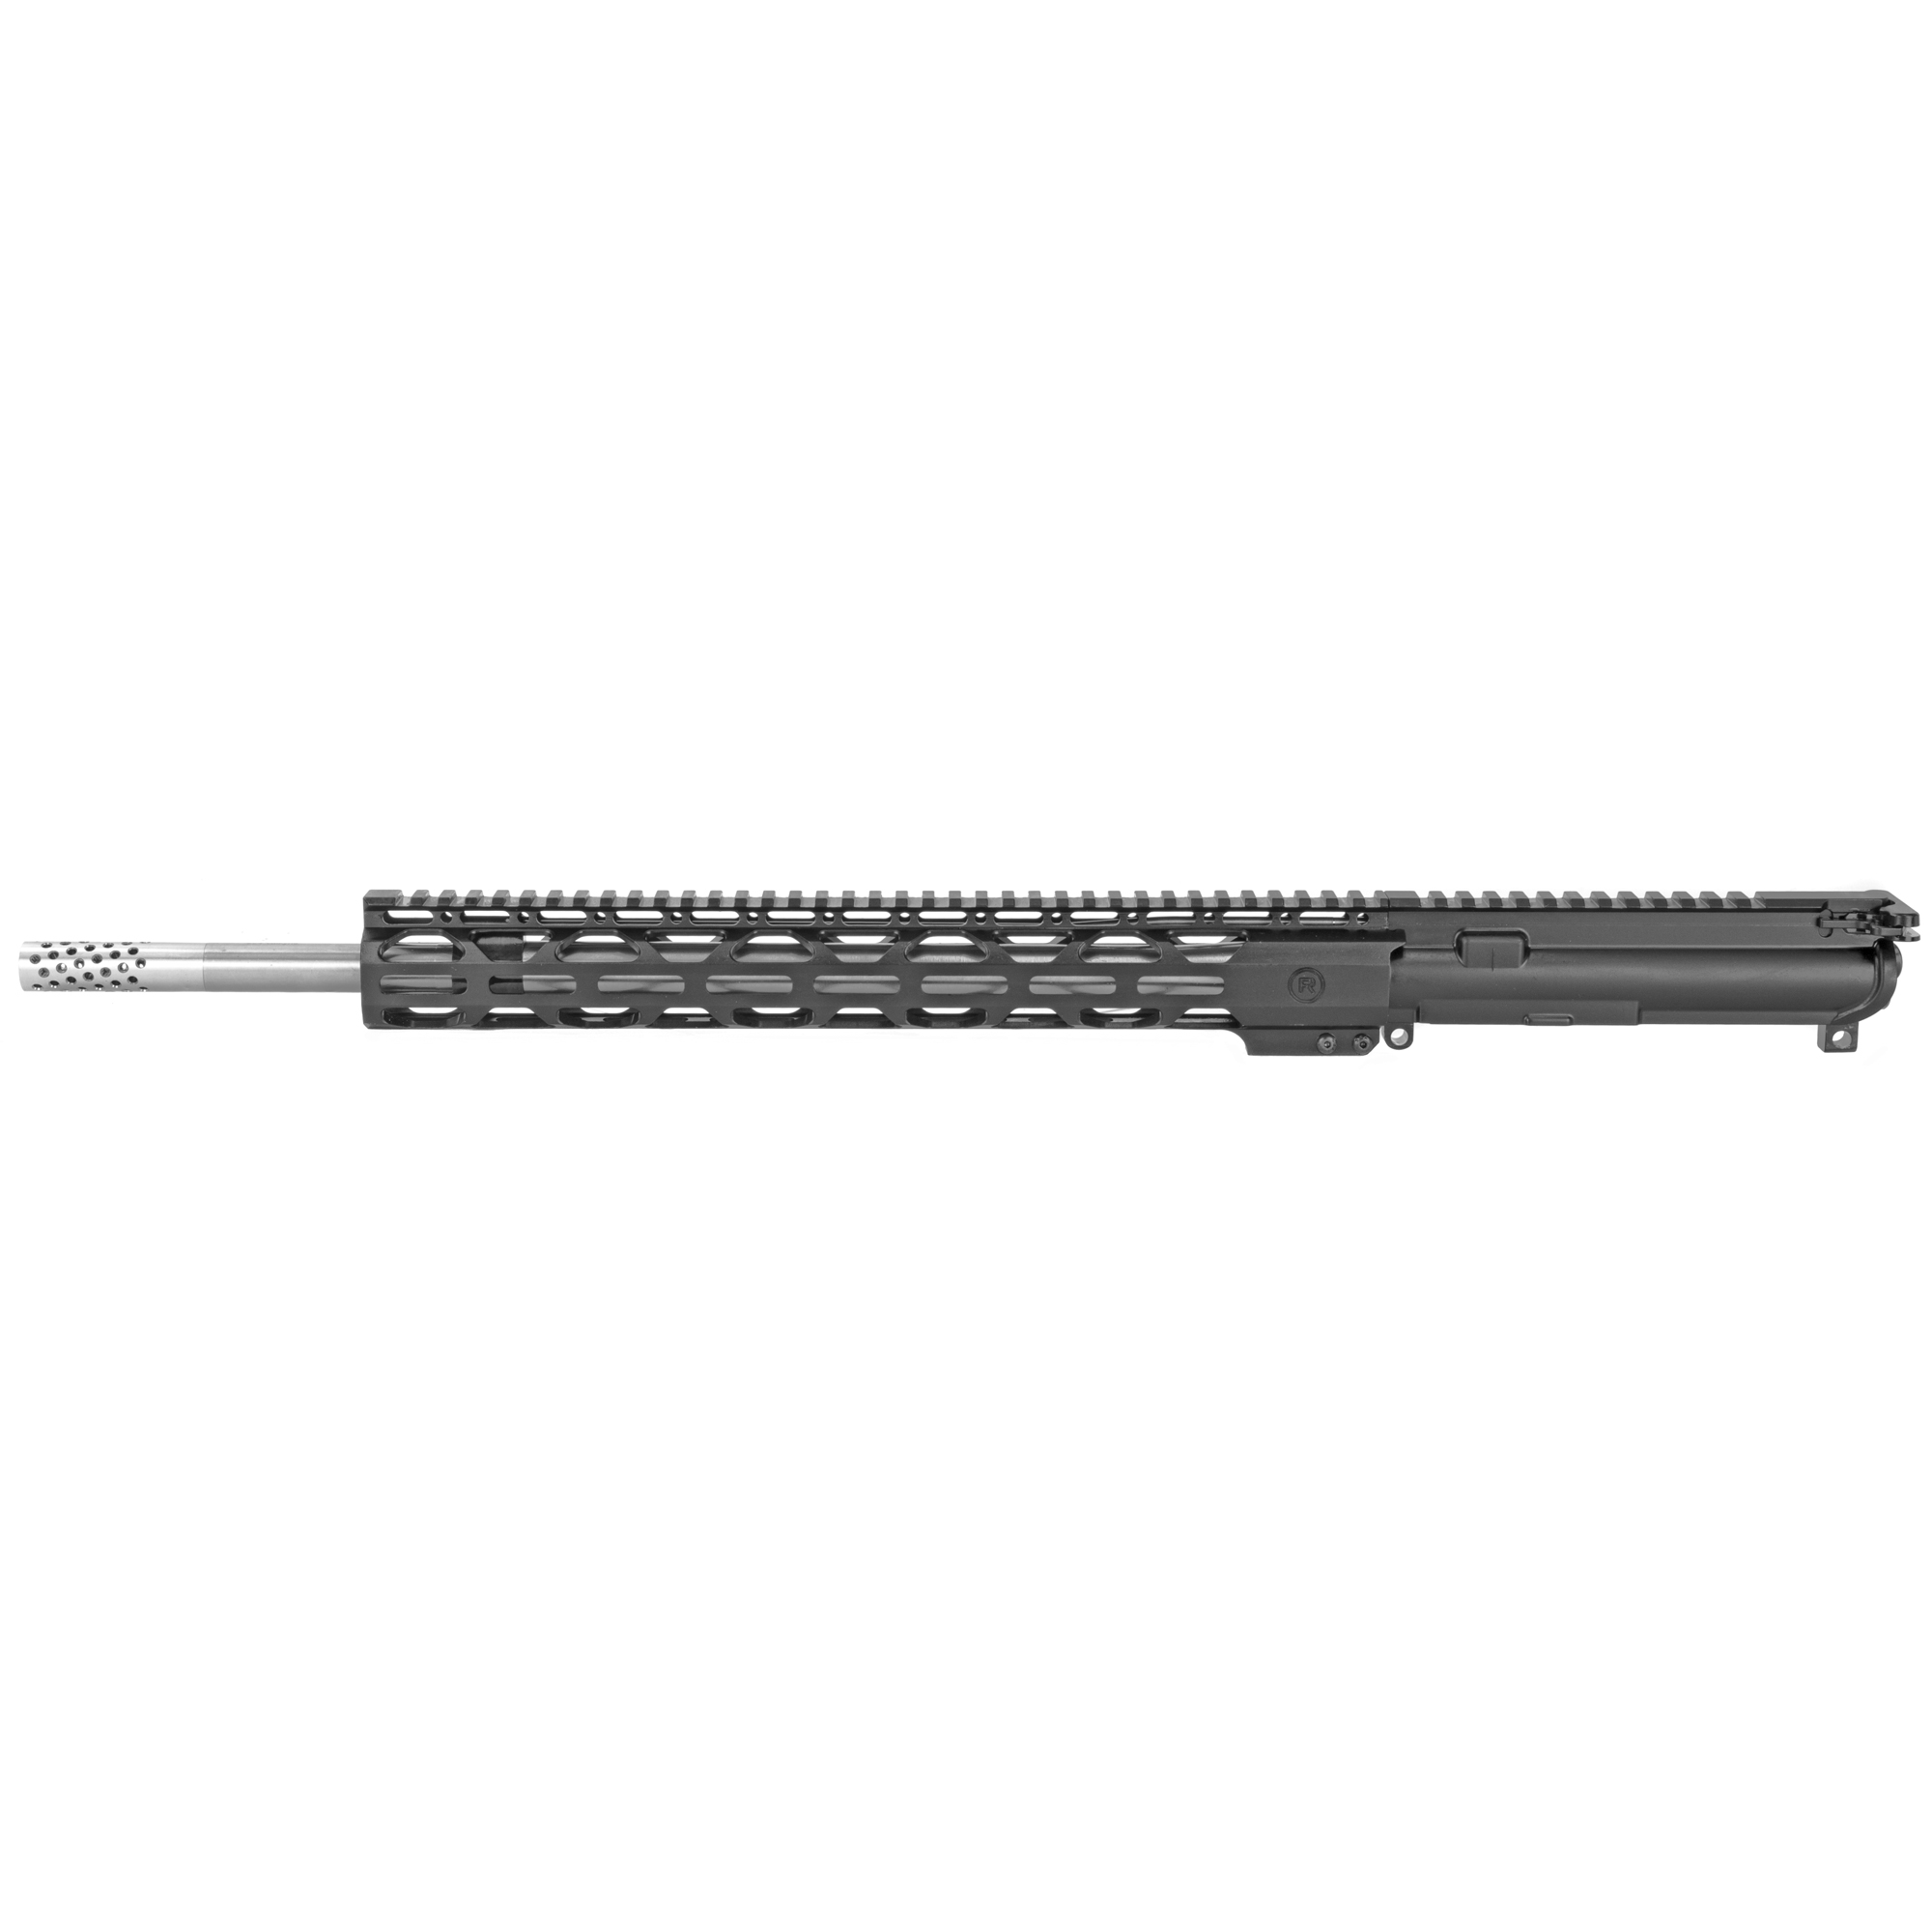 """The Radical Firearms 18"""" Stainless .224 Valkyrie is a complete MIL-STD upper ready to drop on any MIL-STD lower Receiver. Perfect for the novice or advanced shooter wanting to finish out that build and hit the range. Built with a 15"""" RPR free float rail system for increased accuracy and keeping your hands cool. No matter what your style of shooting is"""" Radical Firearms has you covered."""